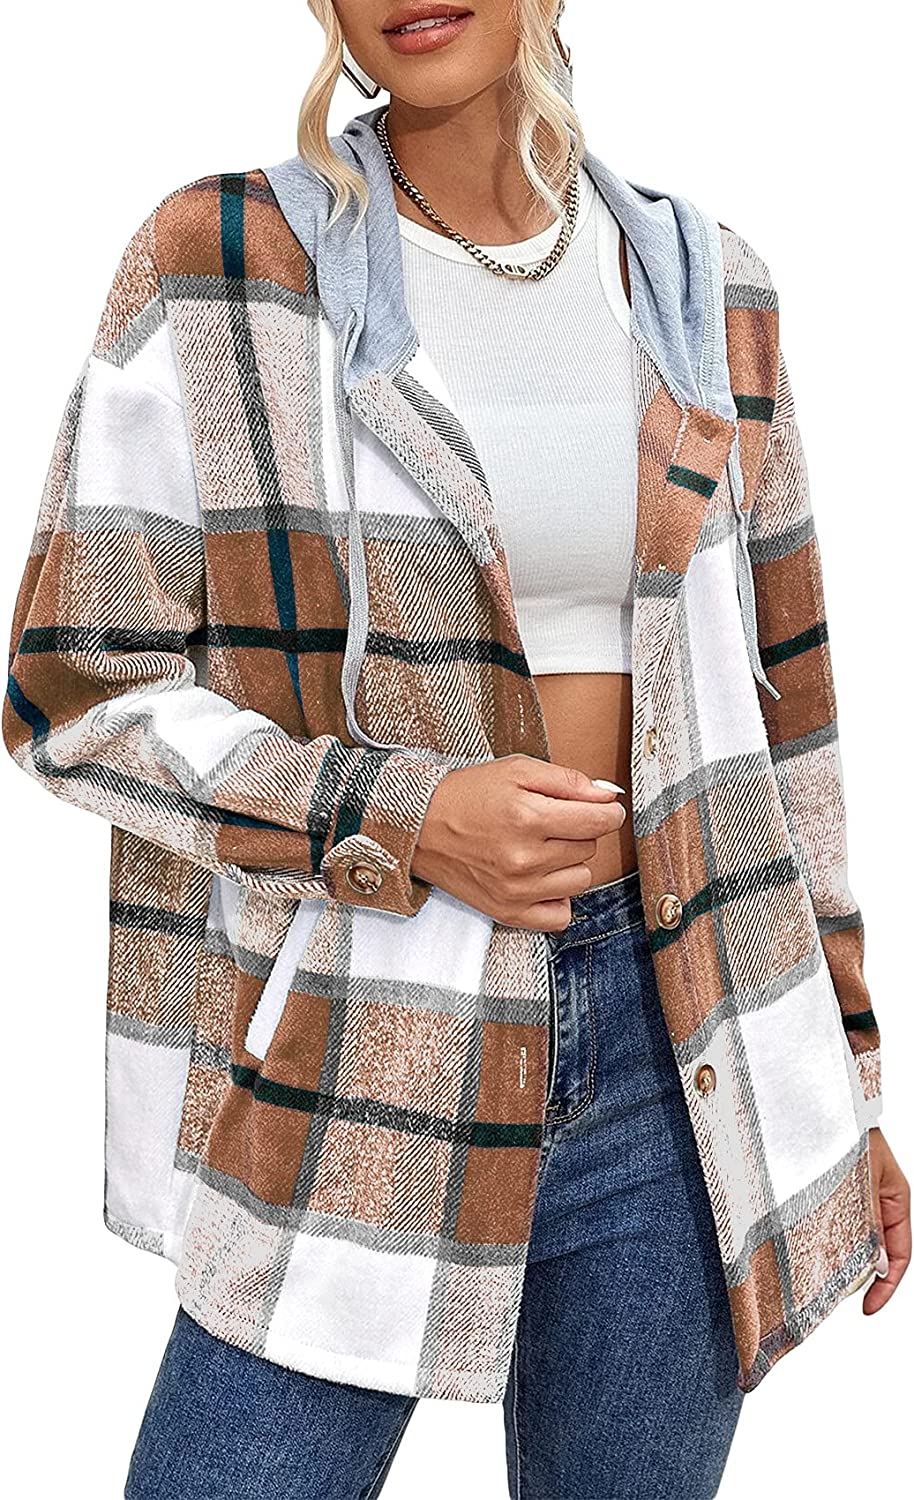 PASLTER Womens Casual Plaid Hooded Shirt Jackets Long Sleeve Button Down Flannel Fall Spring Coat With Pockets